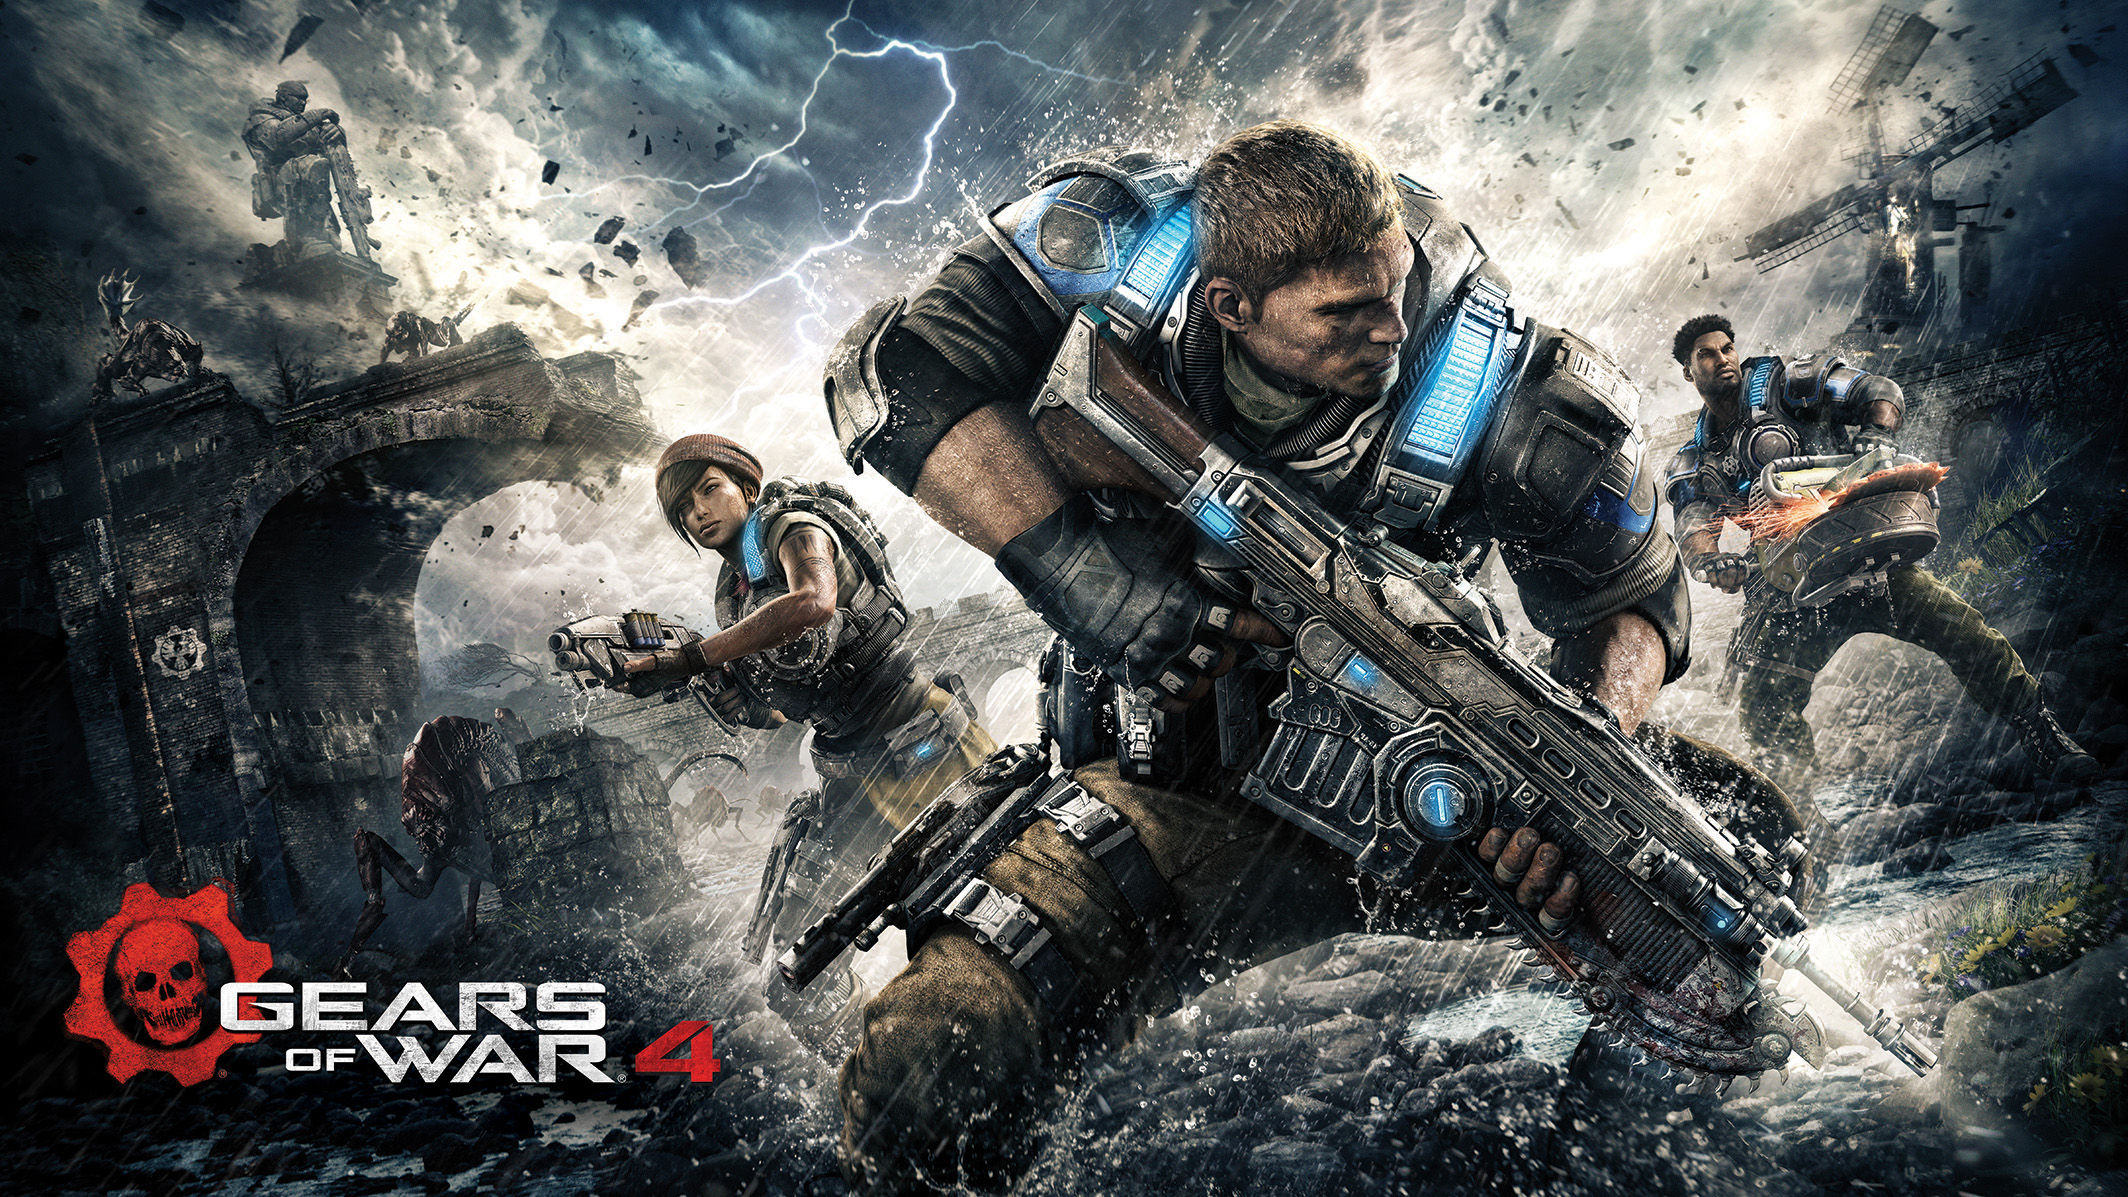 Gears-of-War-4-Key-Art-Horizontal.jpg